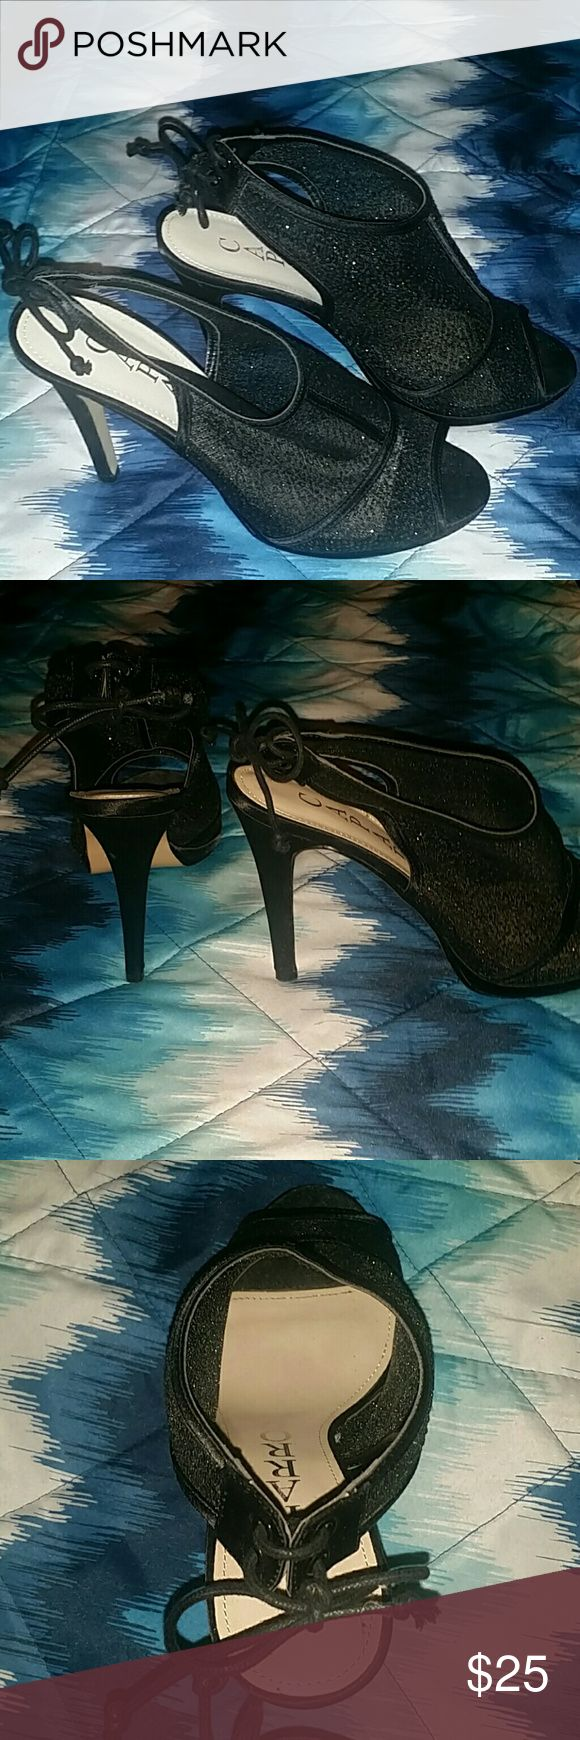 Black open toe heels Size 8 black (with silver sparkles) open toe heels, ties at the back, the heels are 4 inches high.  Man nade uppers, leather soles. Caparros Shoes Heels